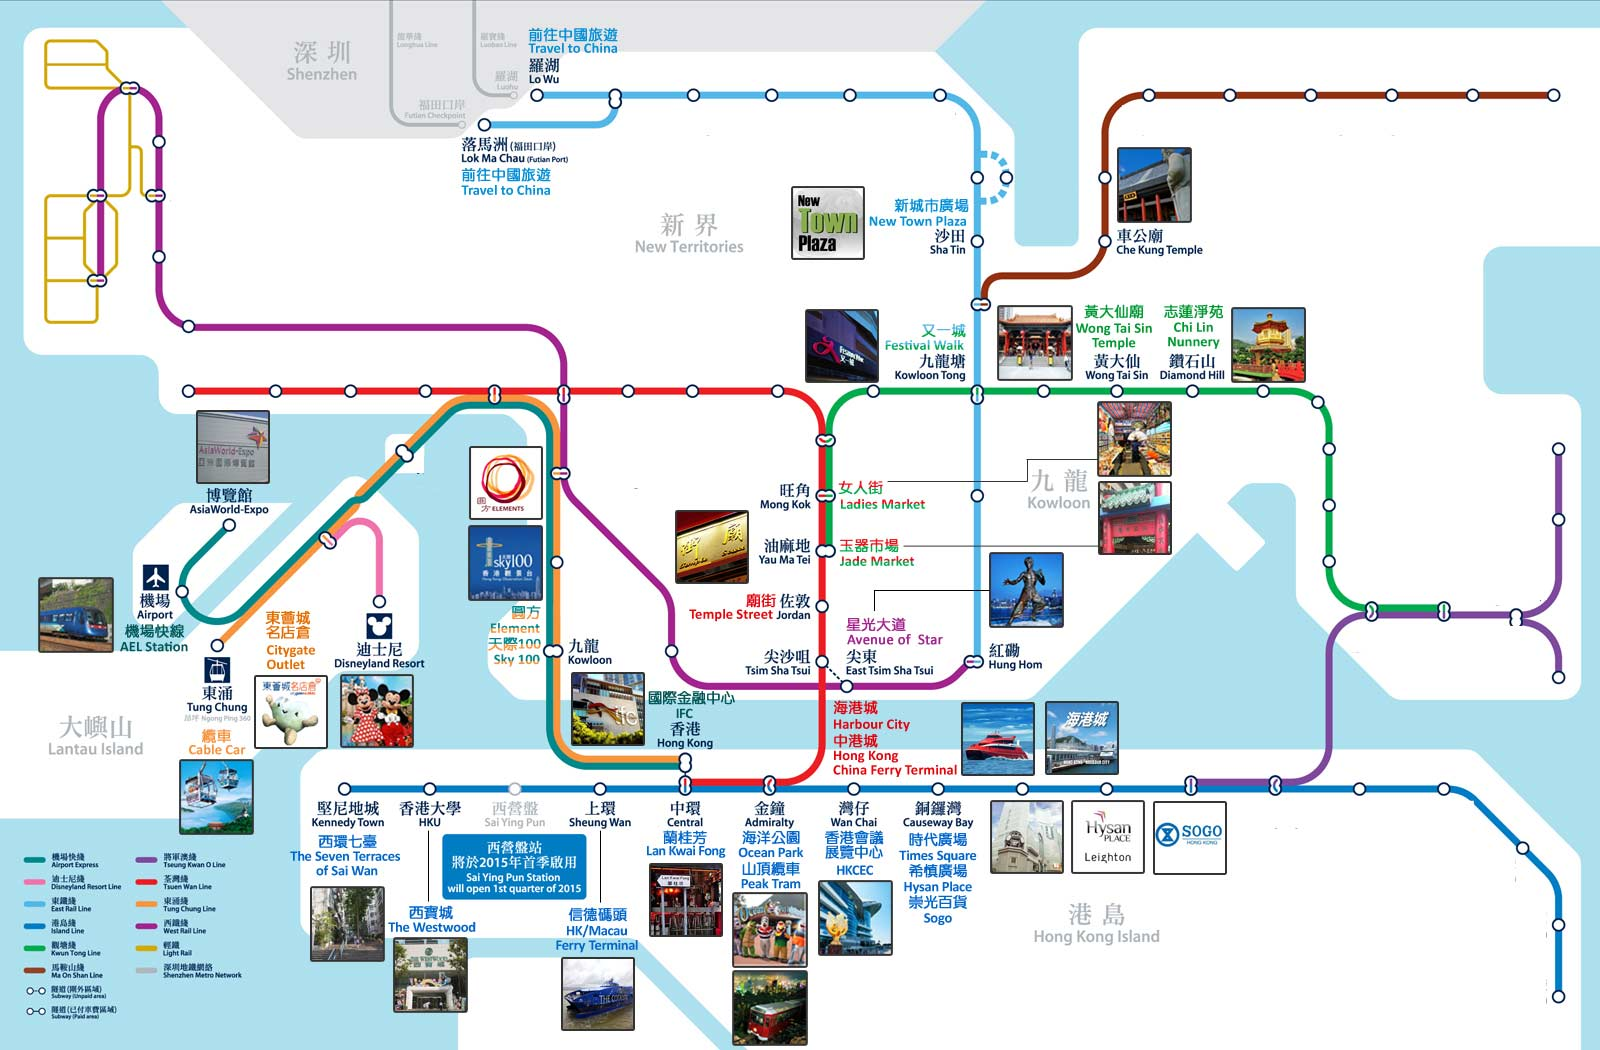 Getting around in hong kong hong kong metro map tsim sha tsui station surrounding area hong kong metro map wan chai station surrounding area gumiabroncs Images